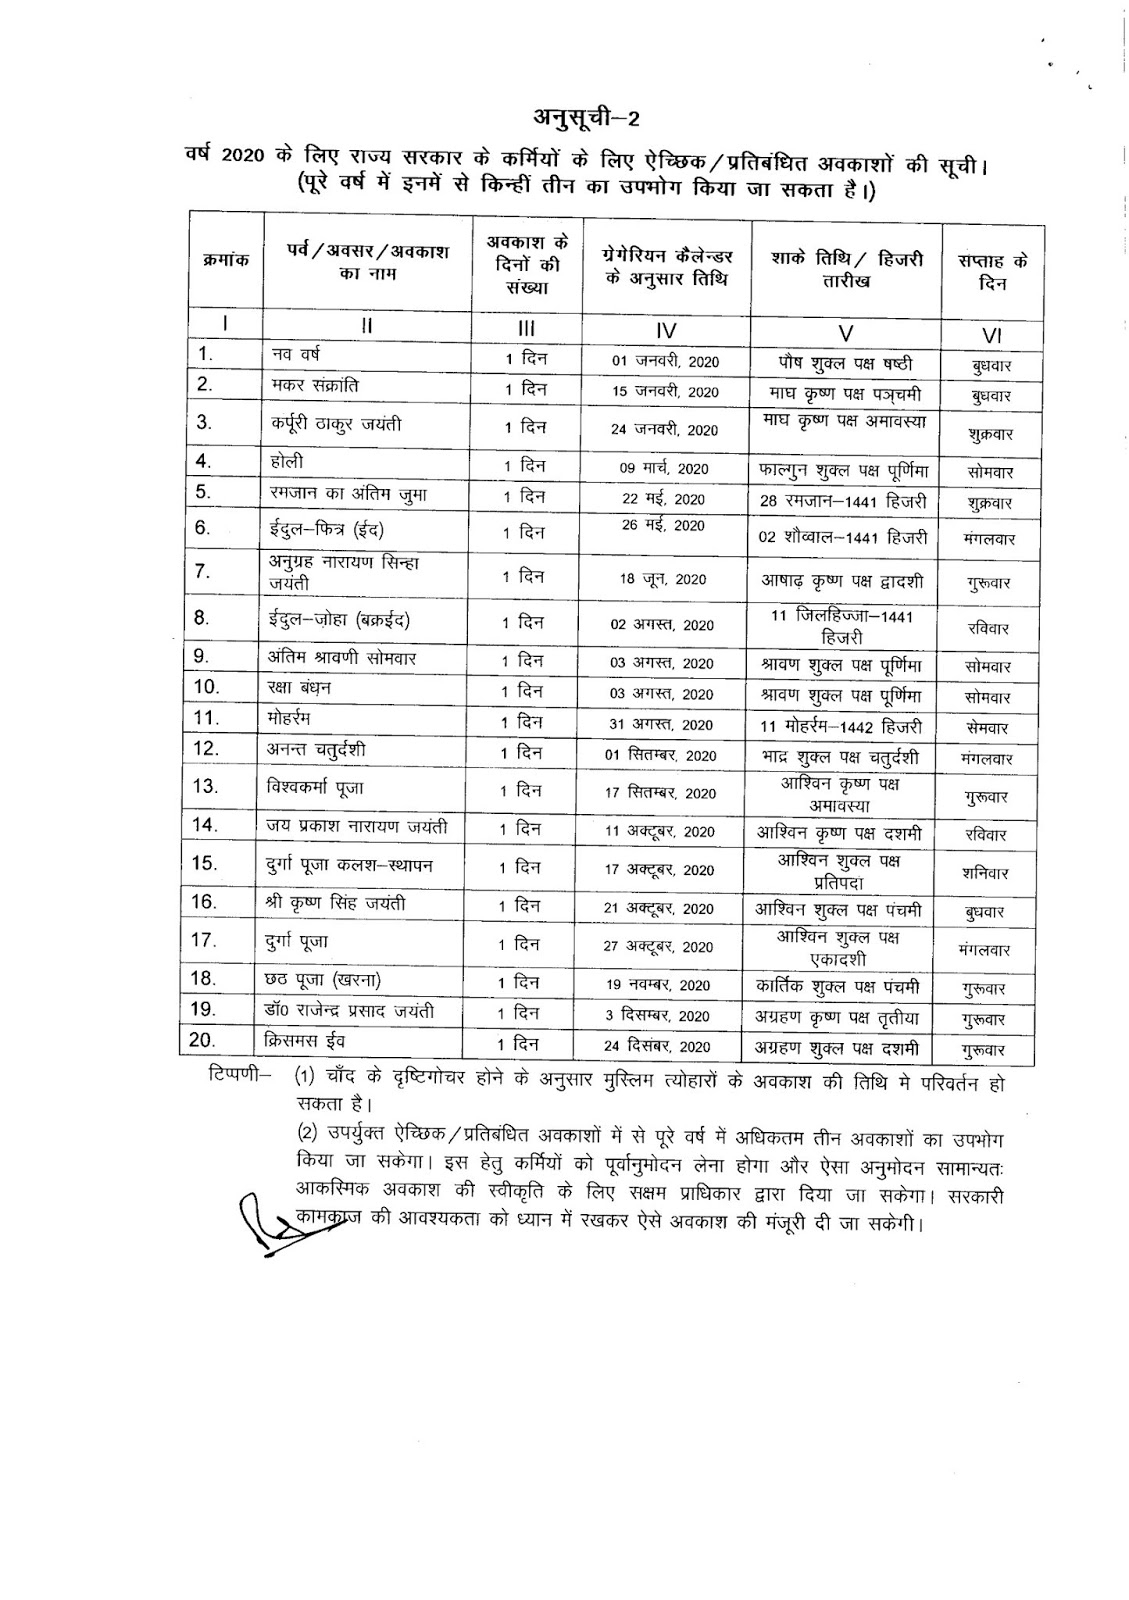 Bihar Government Calendar 2020 #educratsweb within Bihar Government Holiday Calendar 2020